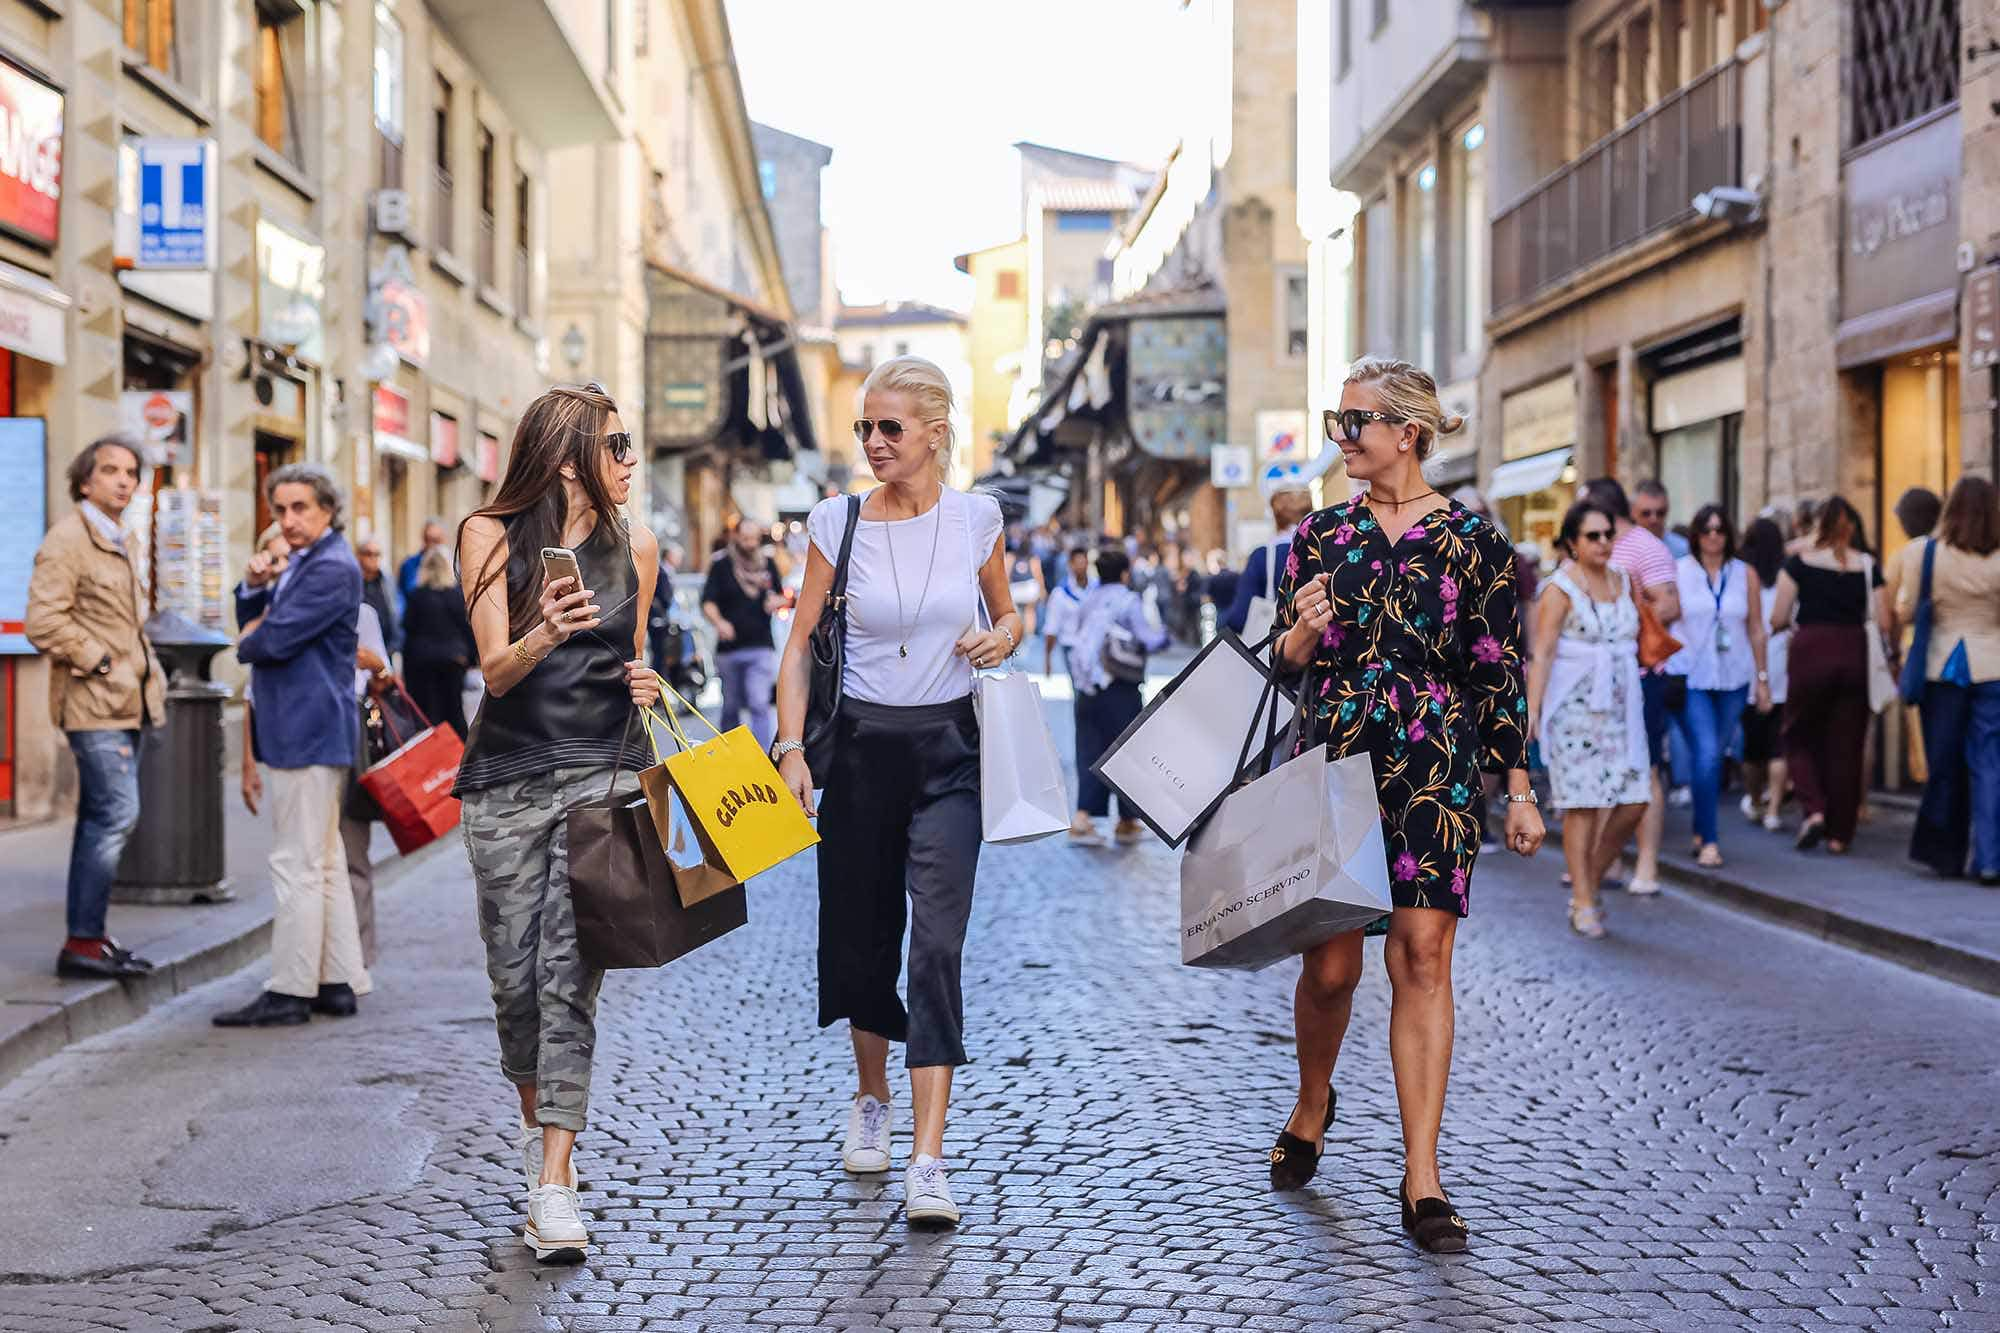 Fancy an insider shopping trip to all the major designer outlets in Florence?